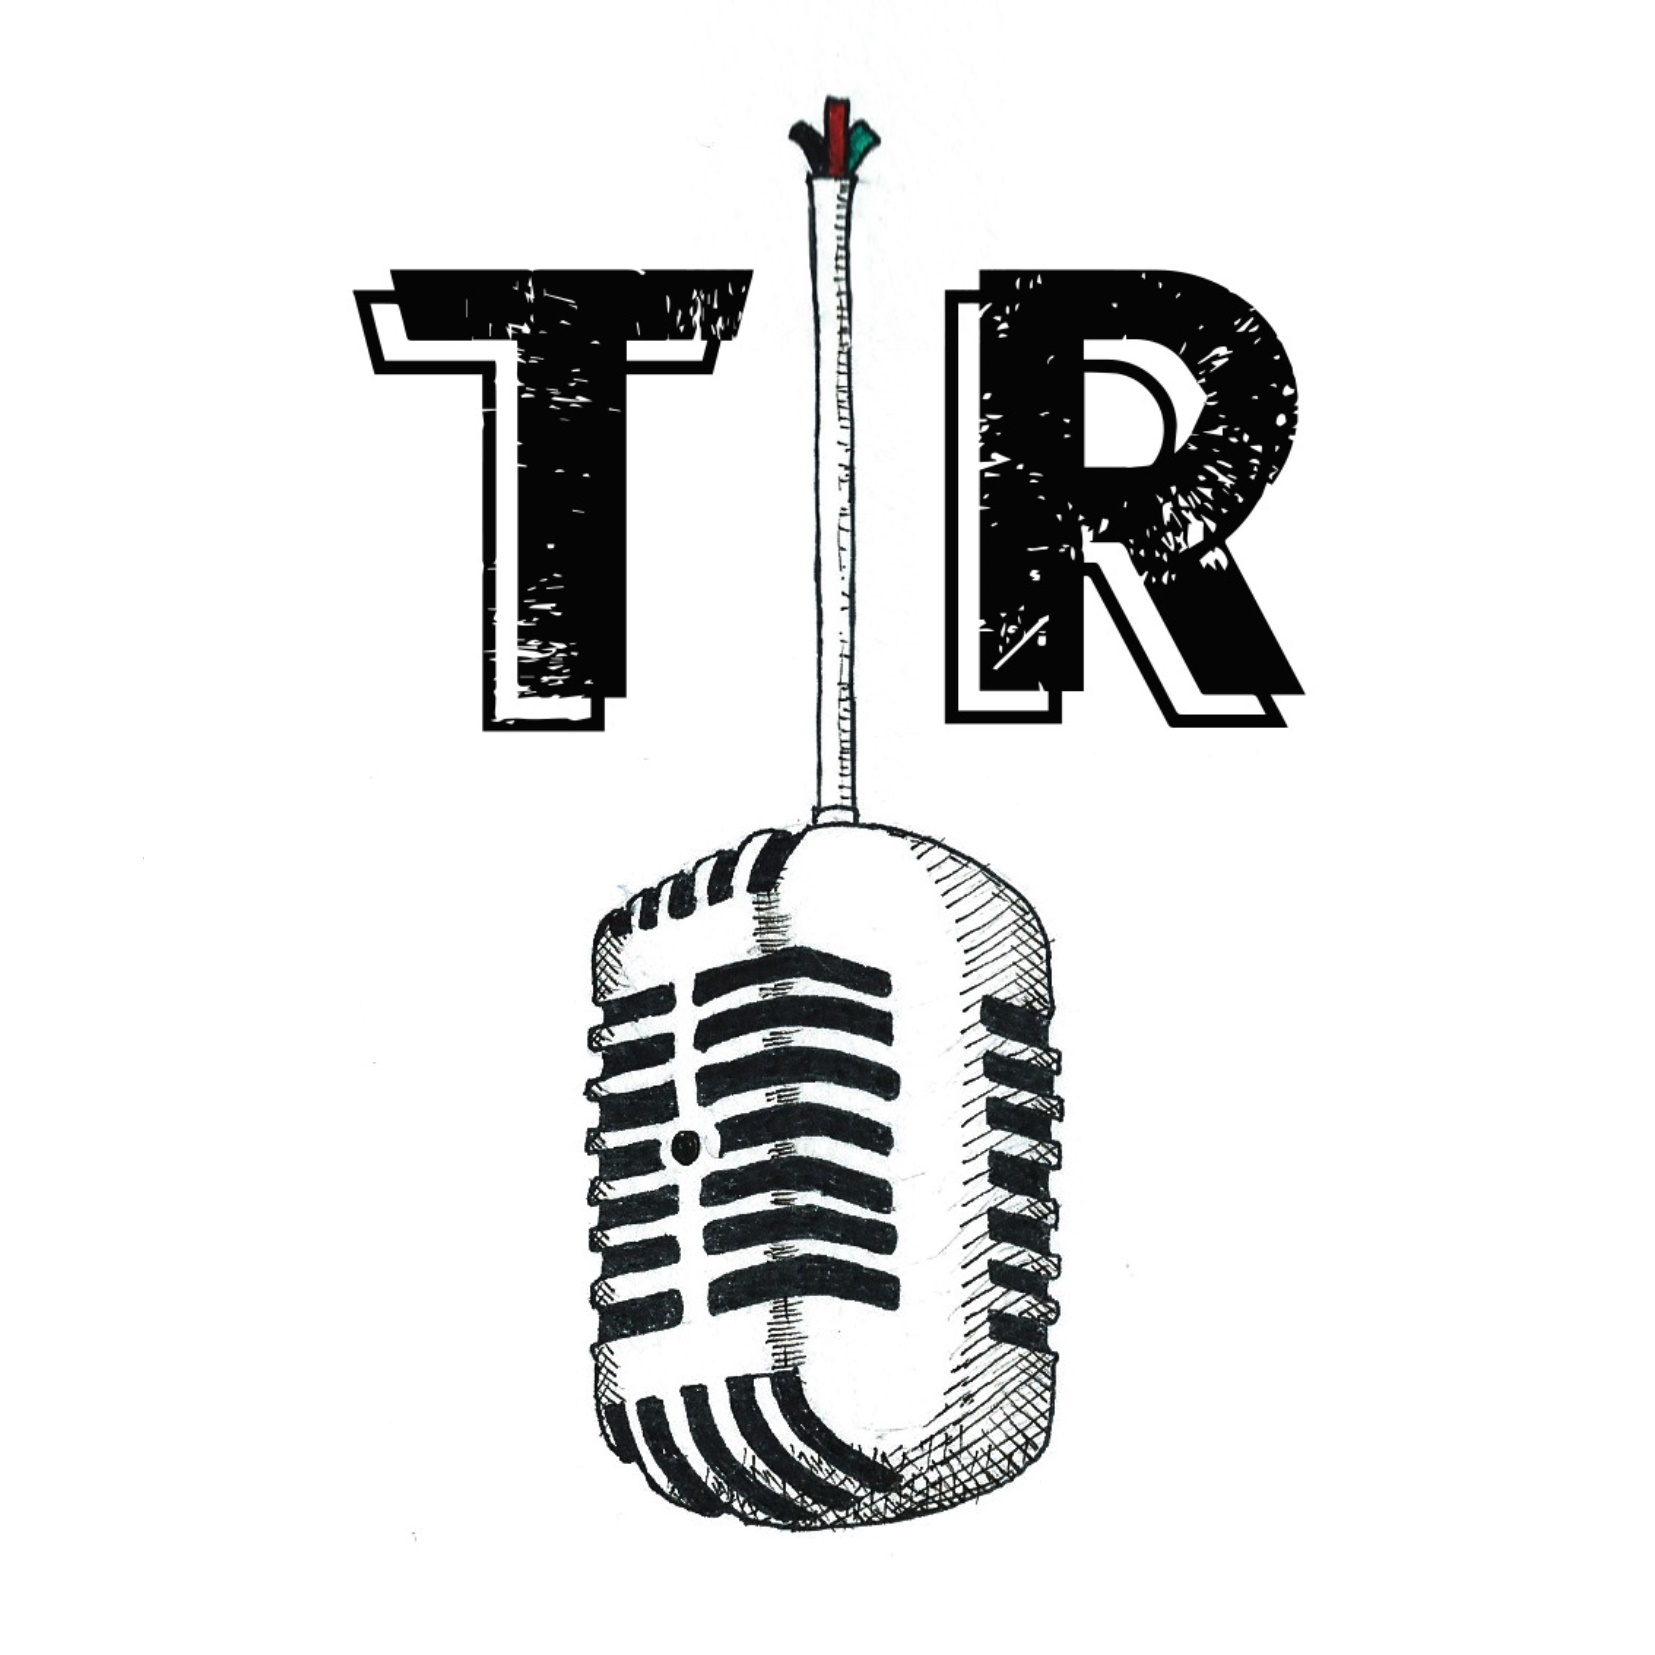 50% off studio hours (regularly $90/hour) for whatever projects ALTA members might have . This makes studio hours $45/hour.  $150 off voice over demo services (regularly $550), making the voice over demo serivce $400 for ALTA members.  To redeem, contact Tightrope on their  website  and offer proof of ALTA membership.